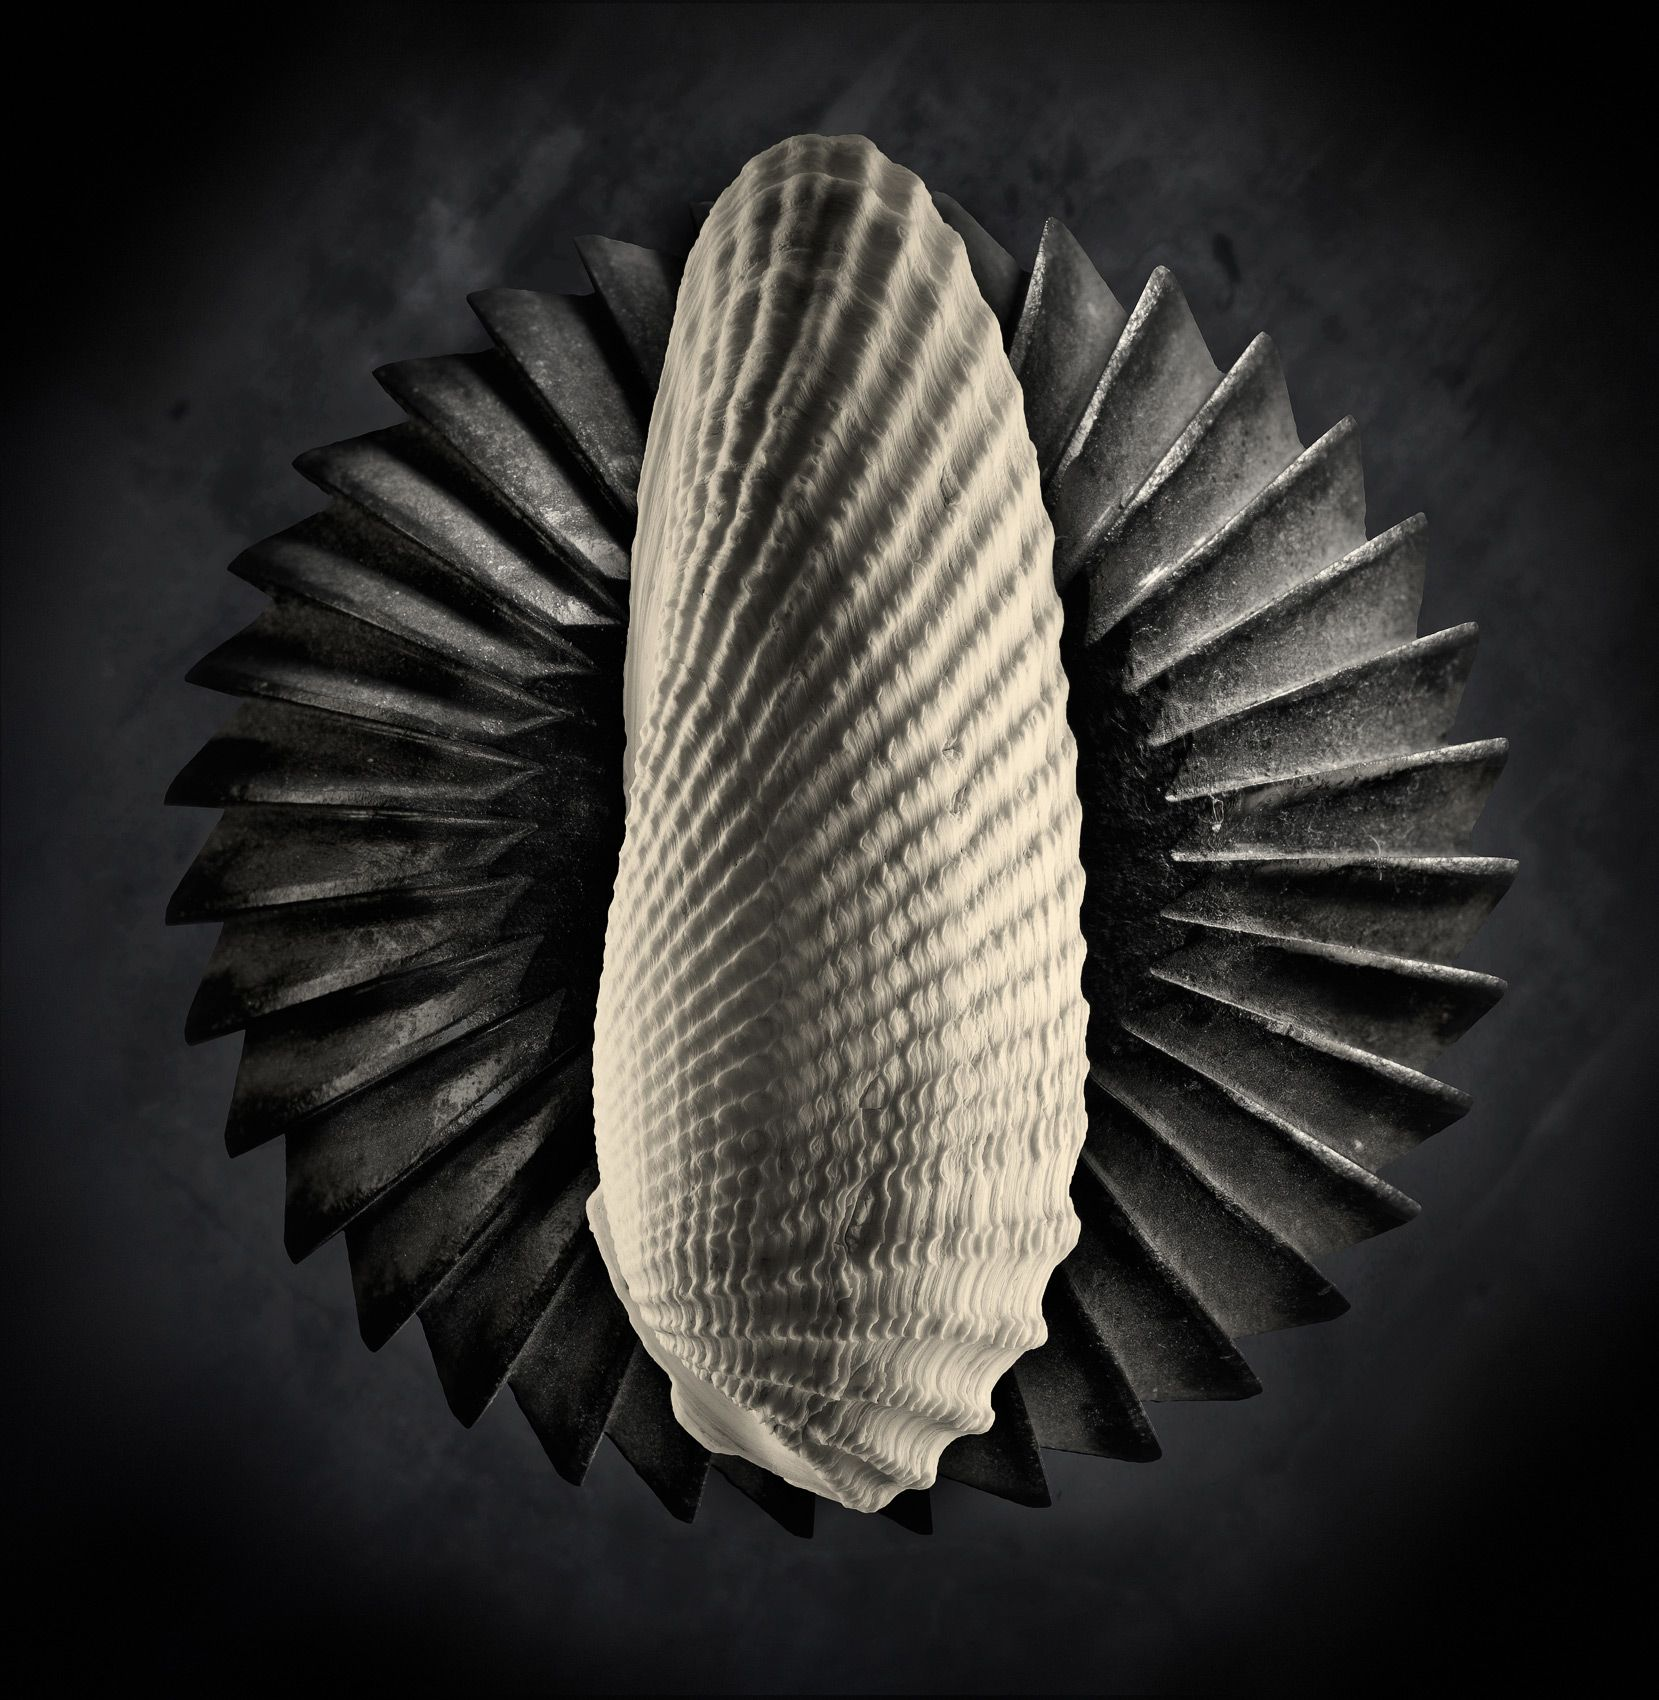 Shell Study #2 by Harold Ross